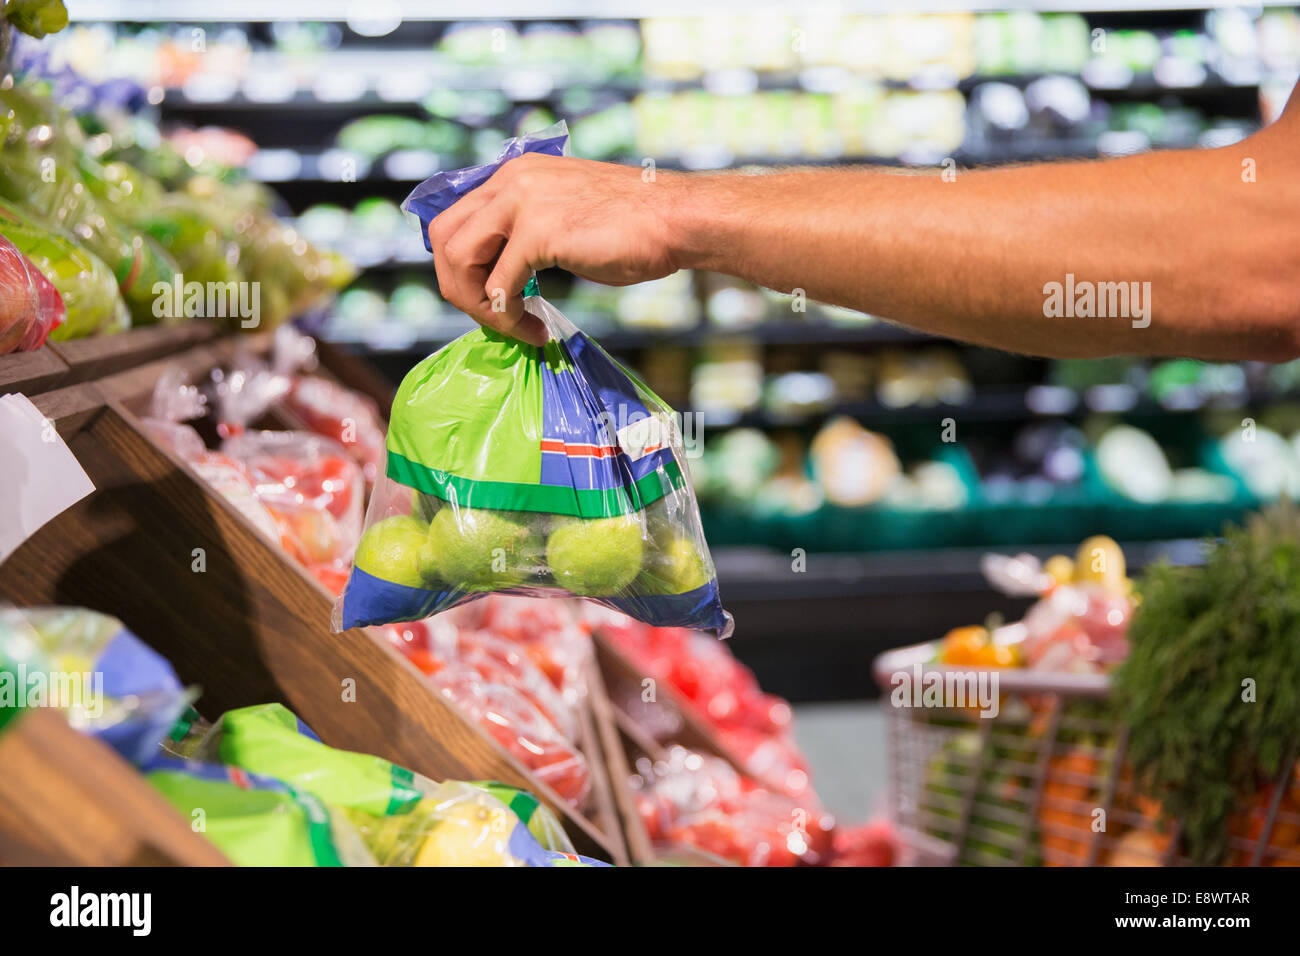 Man holding bag of produce in grocery store - Stock Image